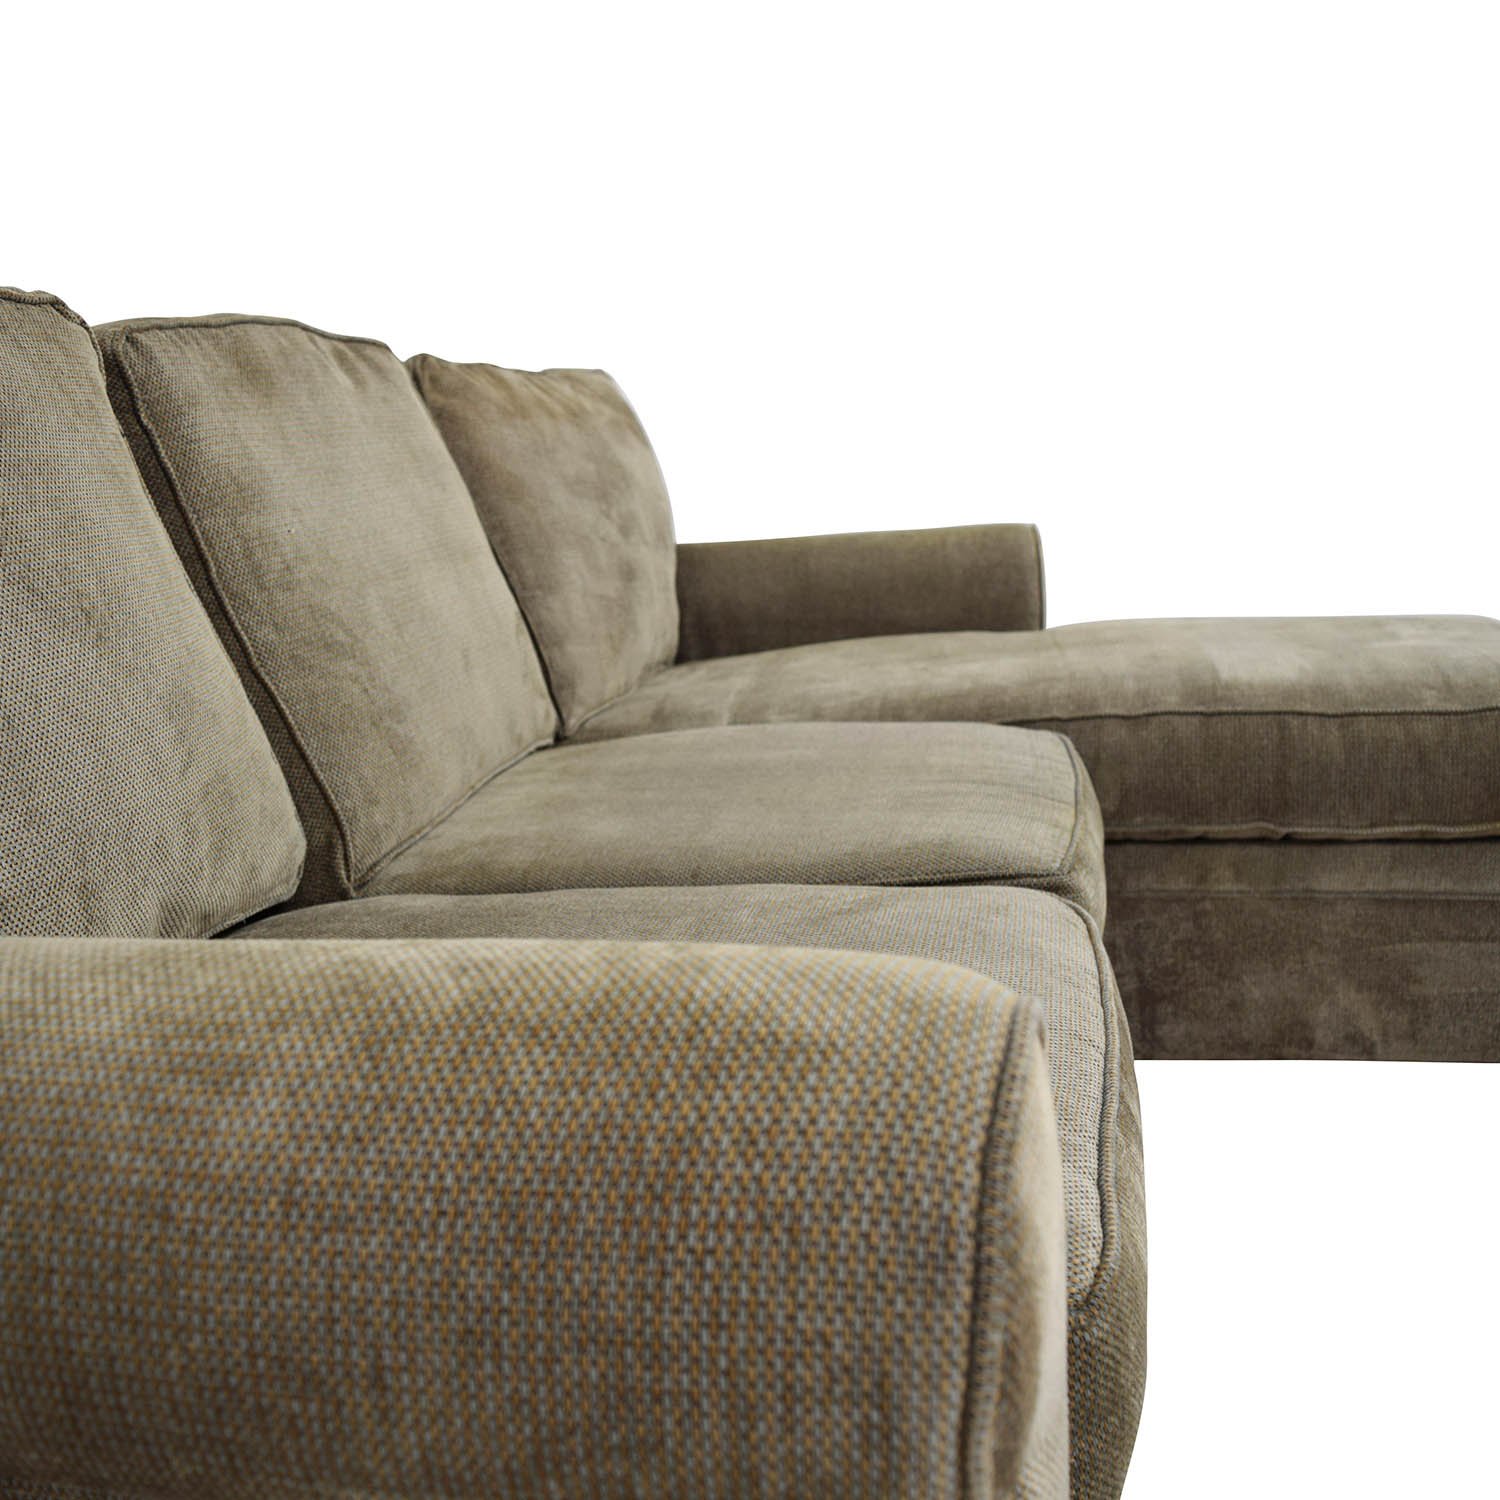 https://images.furnishare.com/23661/room-and-board/sofas/sectionals/buy-room-and-board-green-sectional-with-curved-arms.jpeg